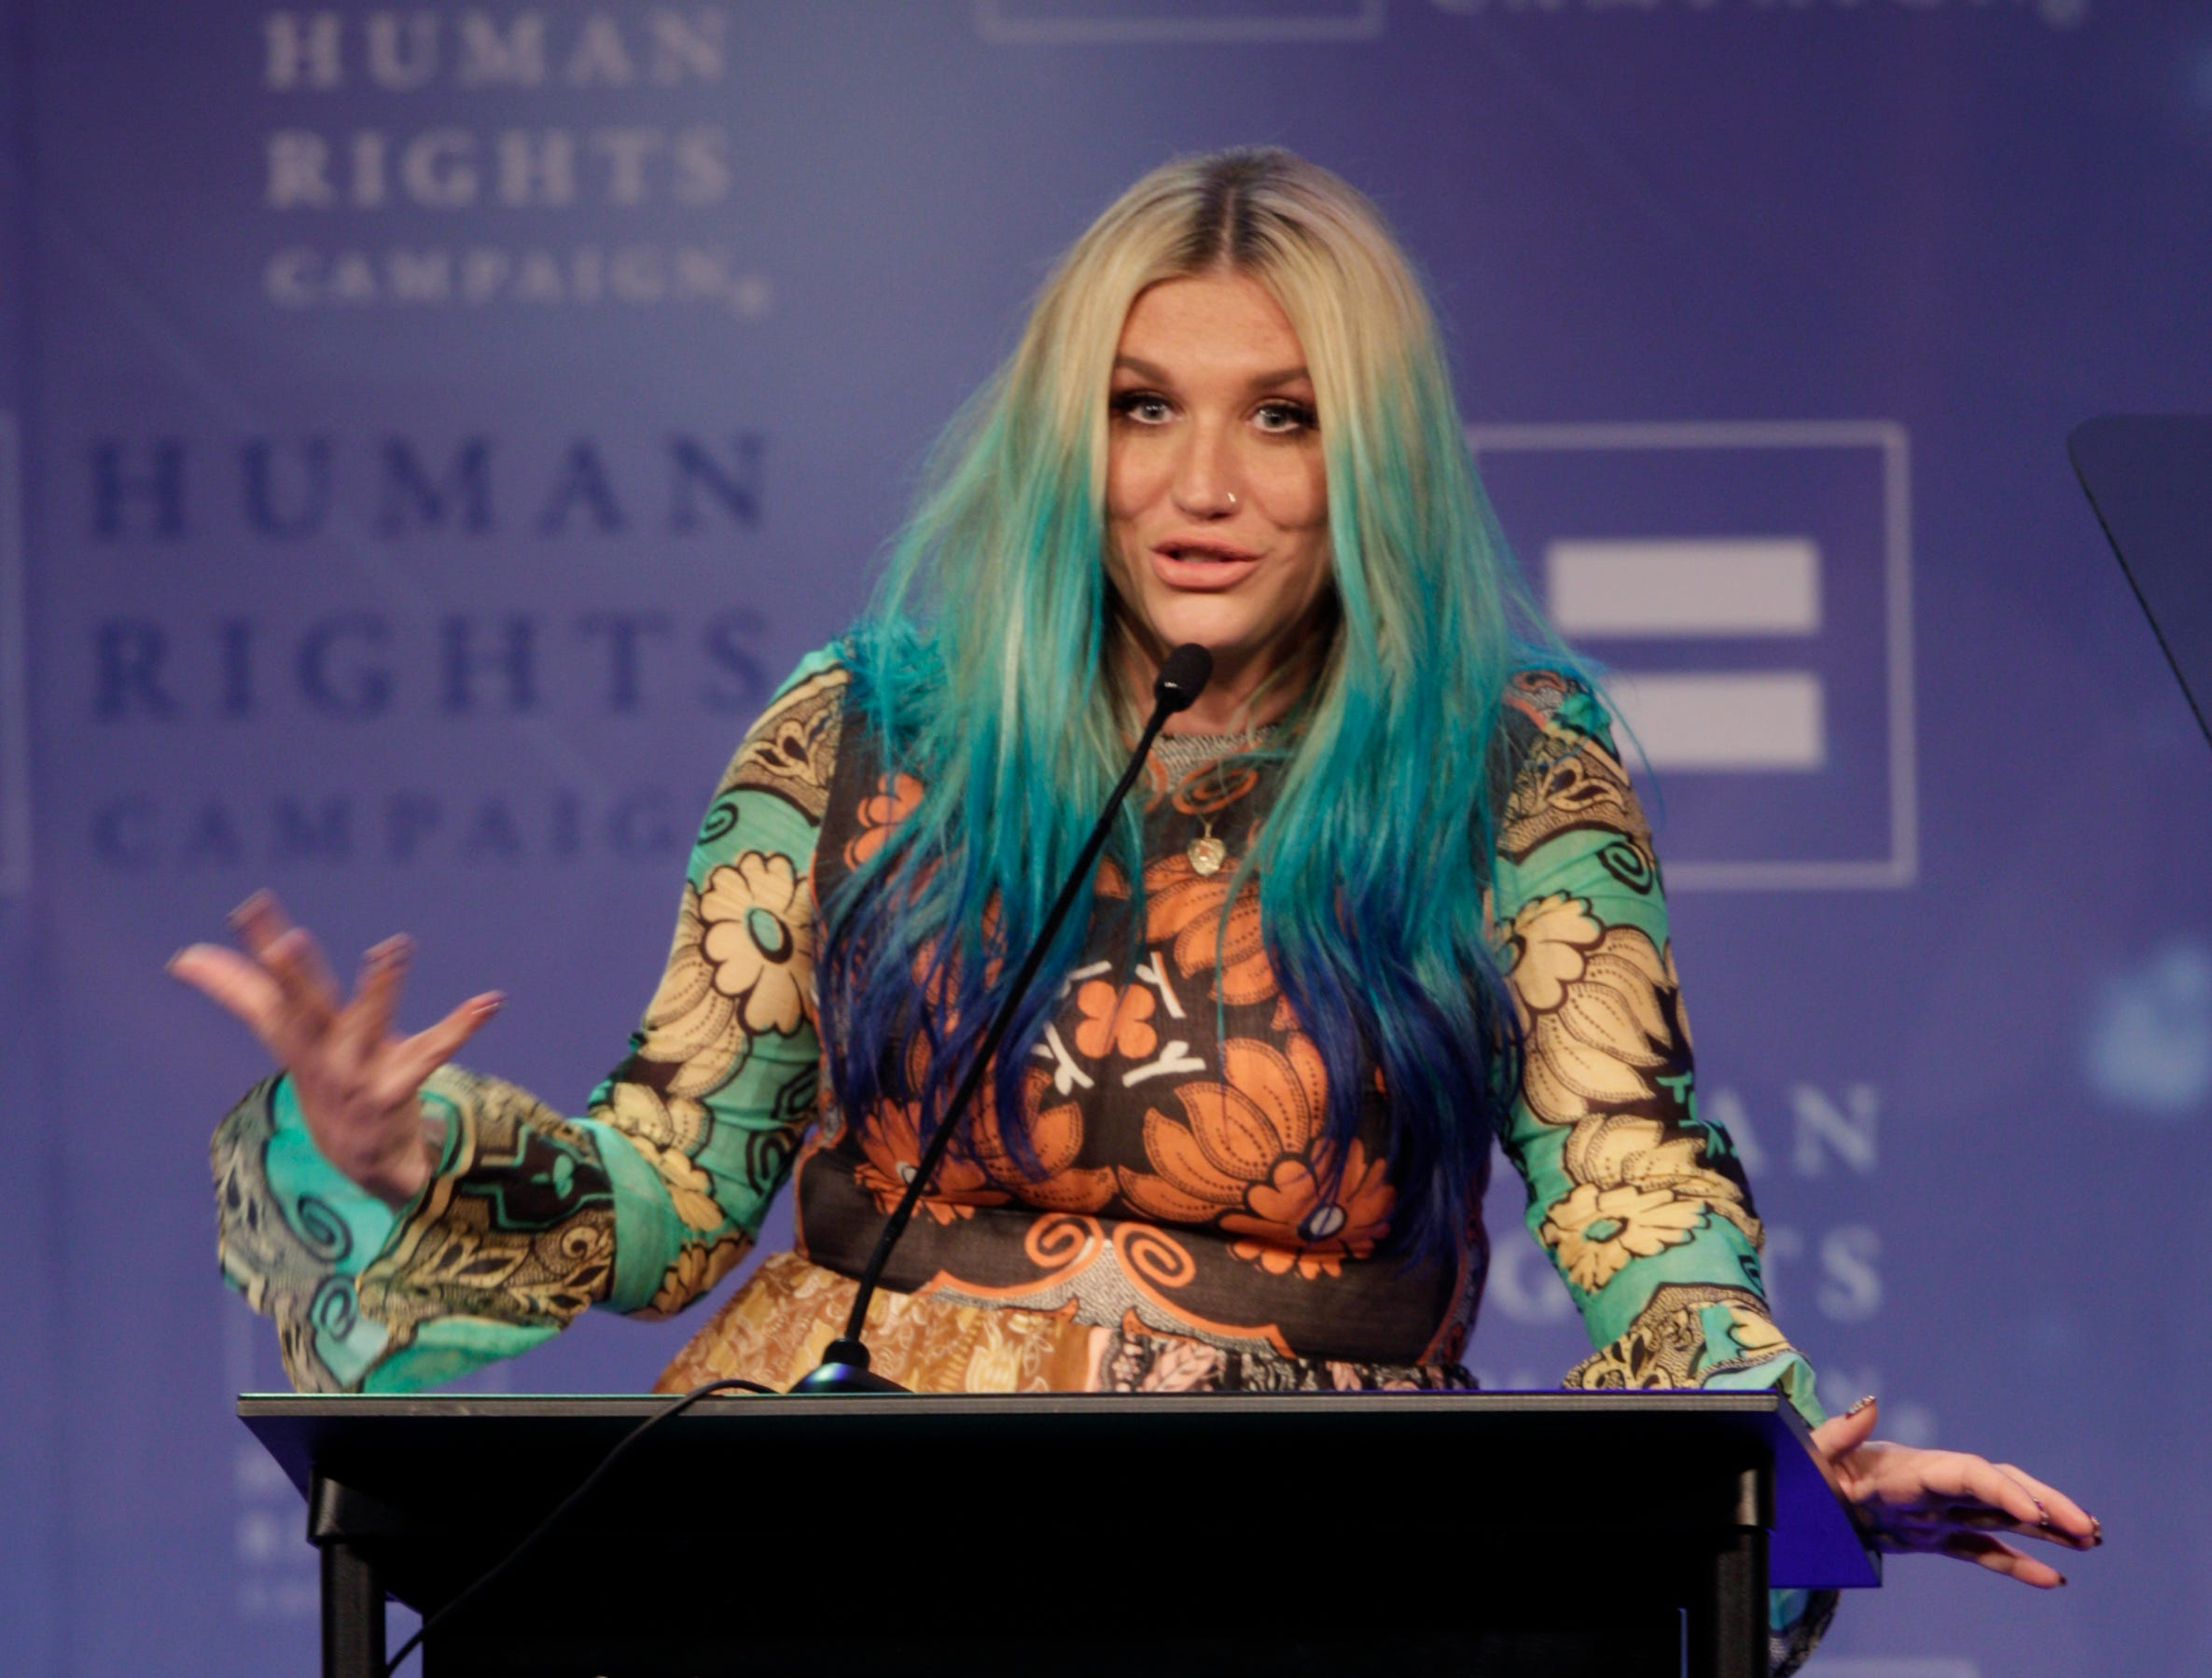 Kesha speaks at the 21st Annual HRC Nashville Equality Dinner, at which she received the HRC's Visibility award, on  March 5, 2016, in Nashville, Tenn.